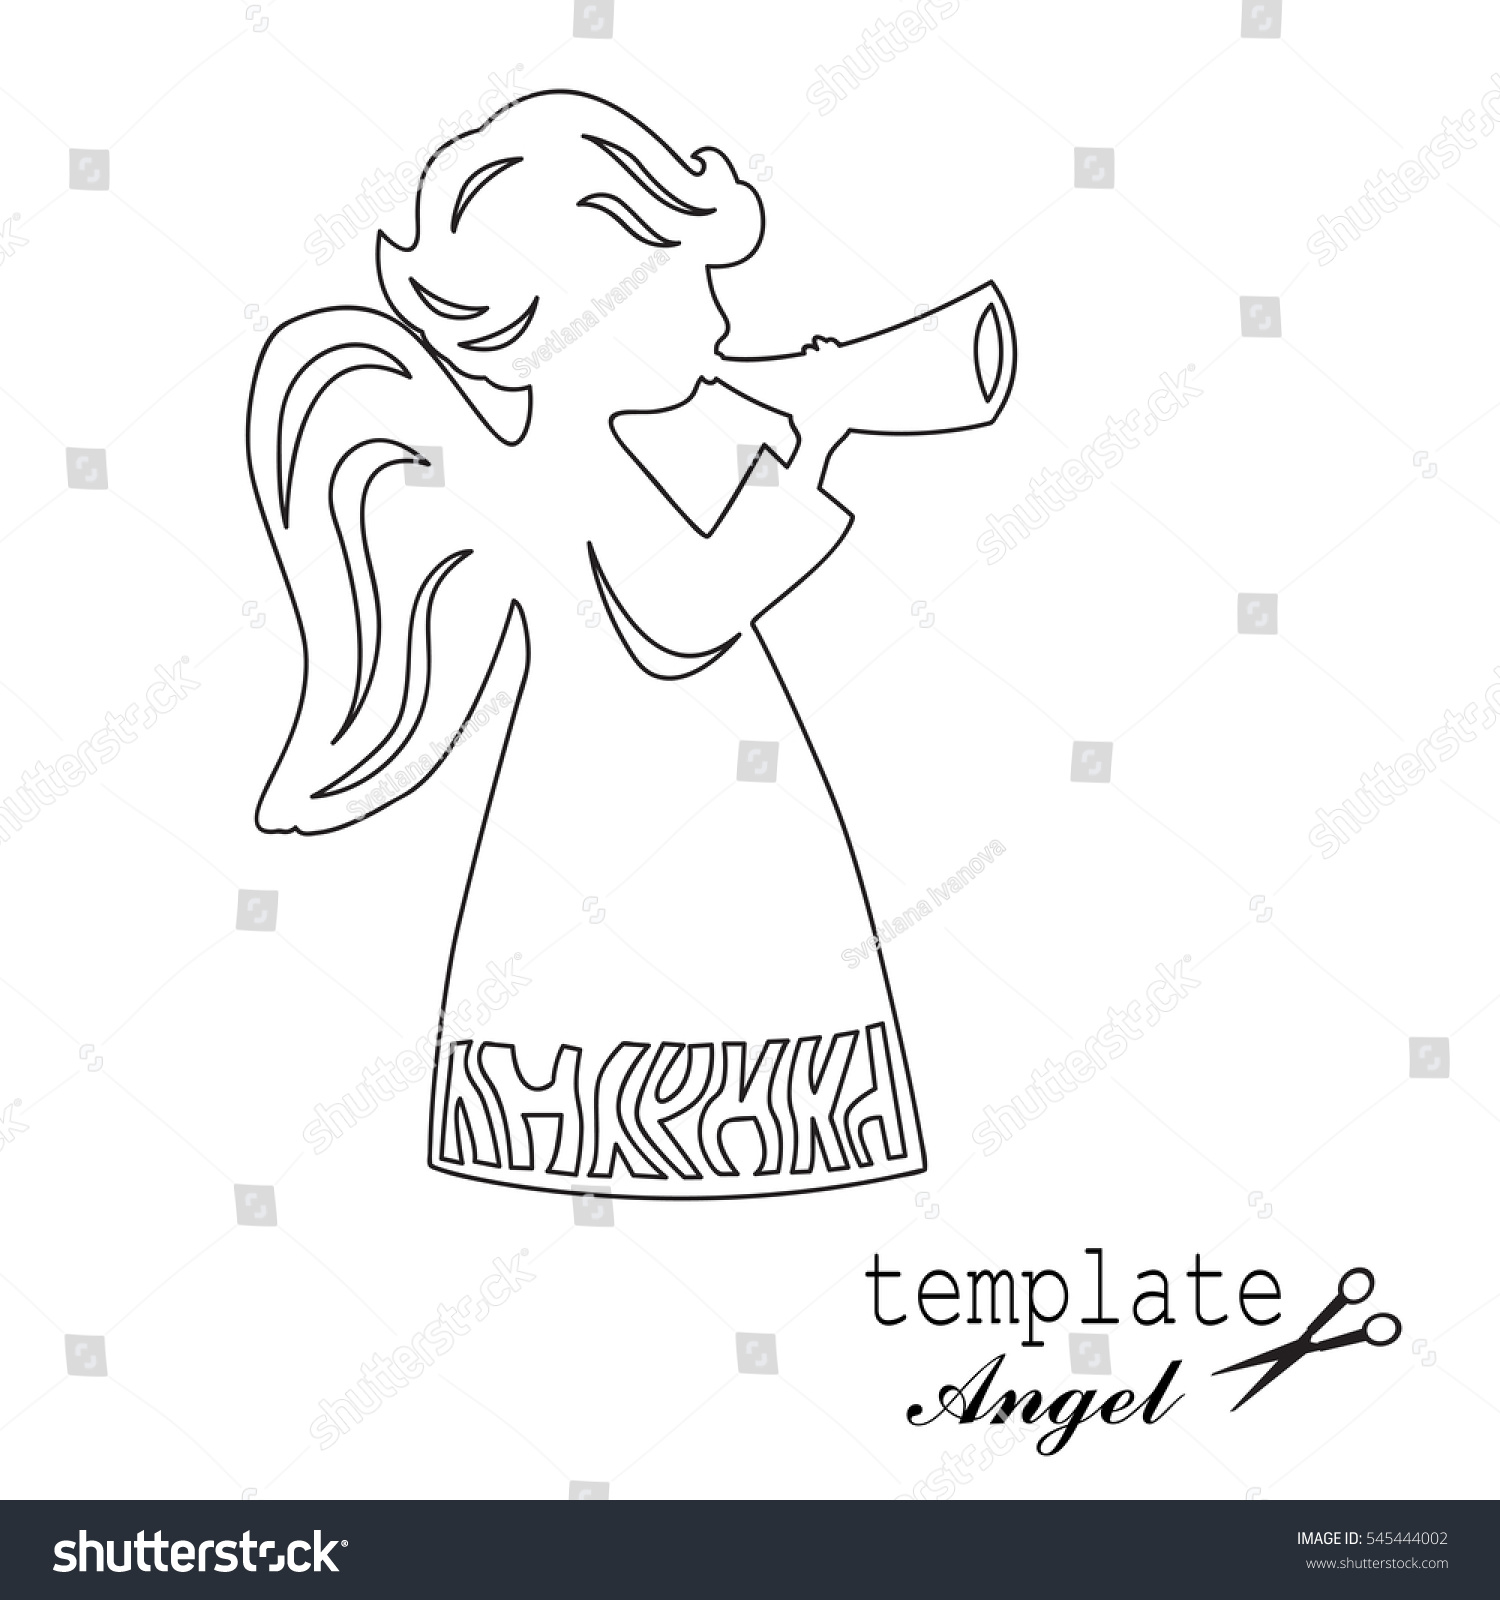 Template Angel Cut Laser Engraved Stencil Stock Vector 545444002